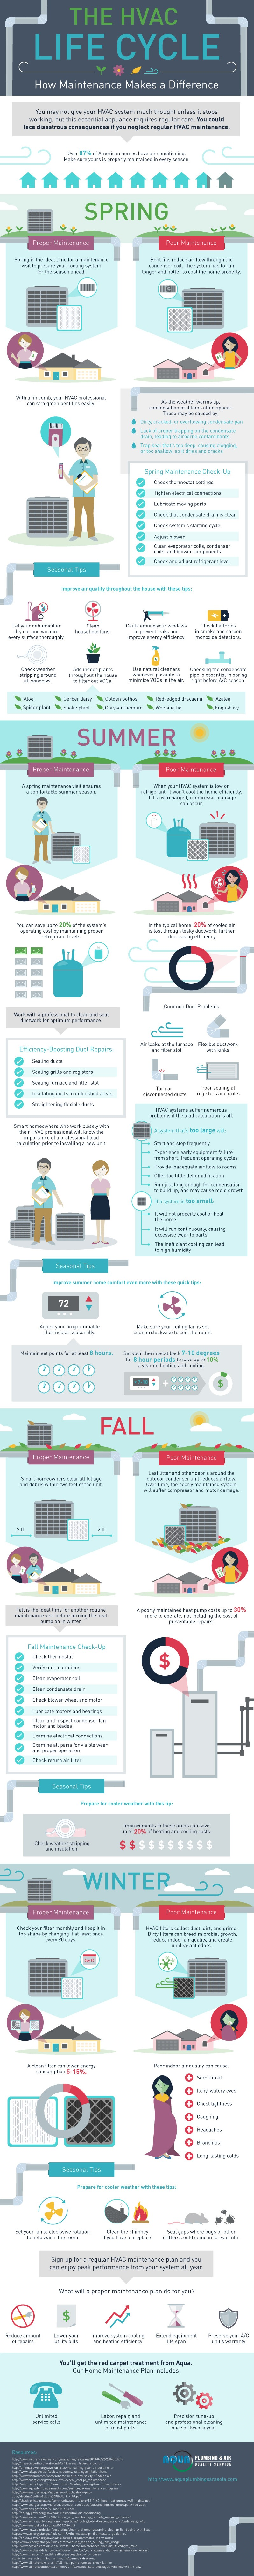 HVAC Life Cycle Infographic